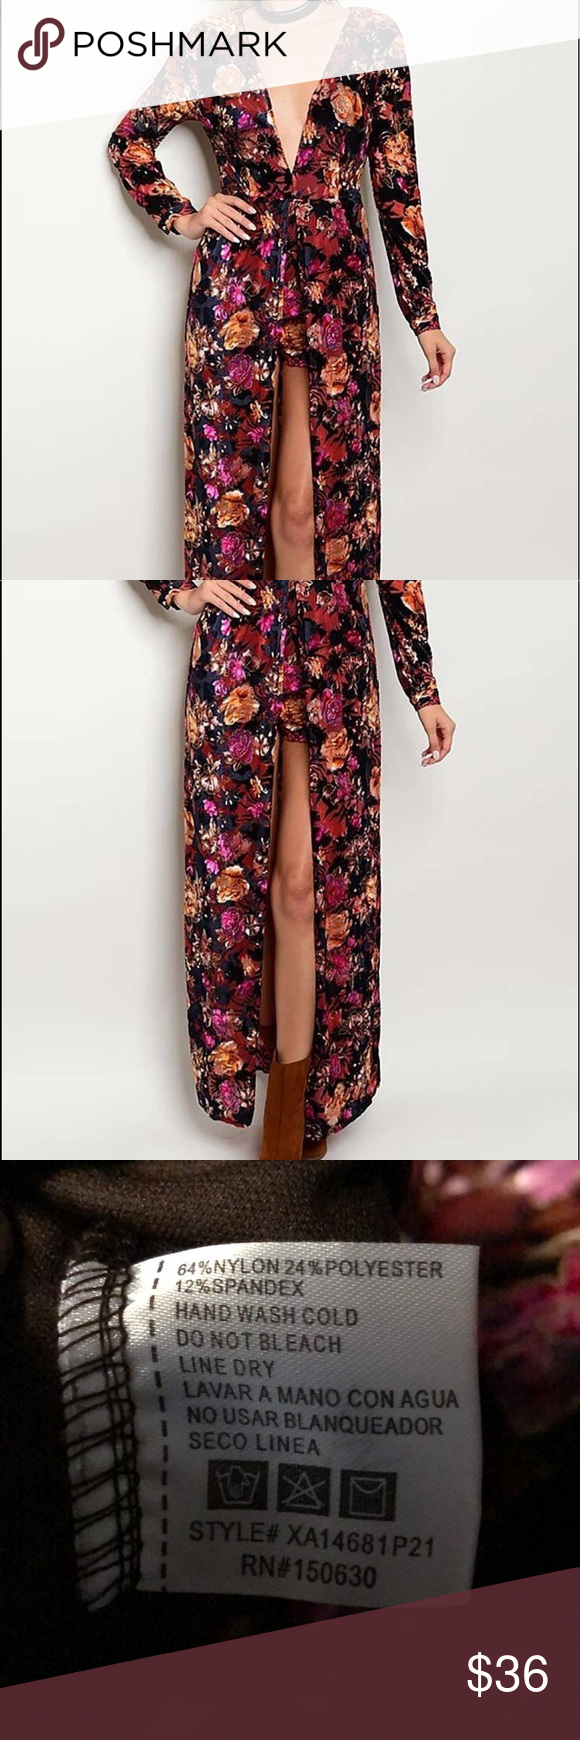 cef7a8758ad Floral print romper maxi dress Super cute floral print maxi romper! -Shorts  underneath -Floor length -Long sleeve Xtaren Dresses Maxi